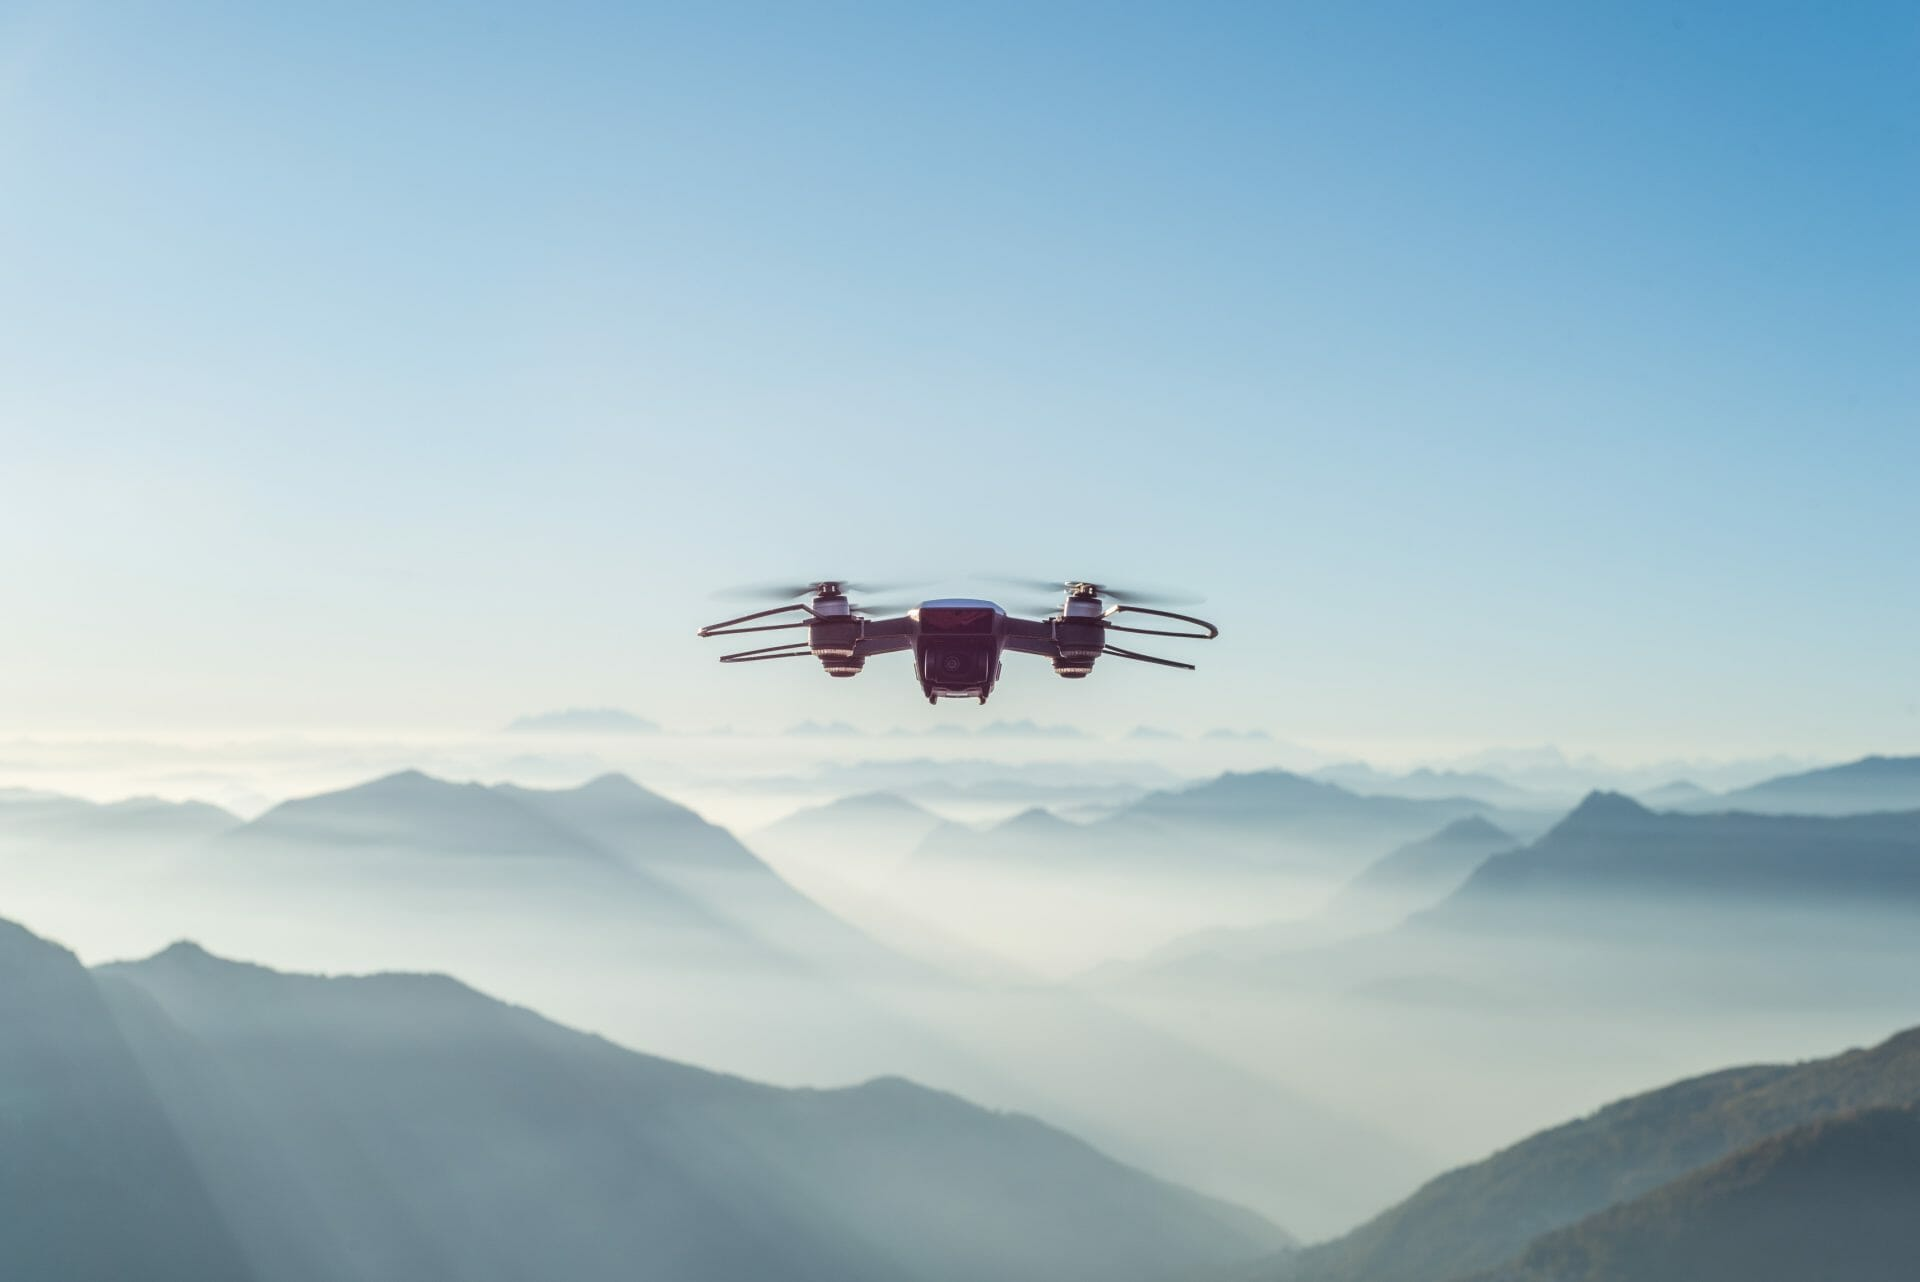 Picture of drone over mountains for Real Estate News for Investors Podcast Episode #751